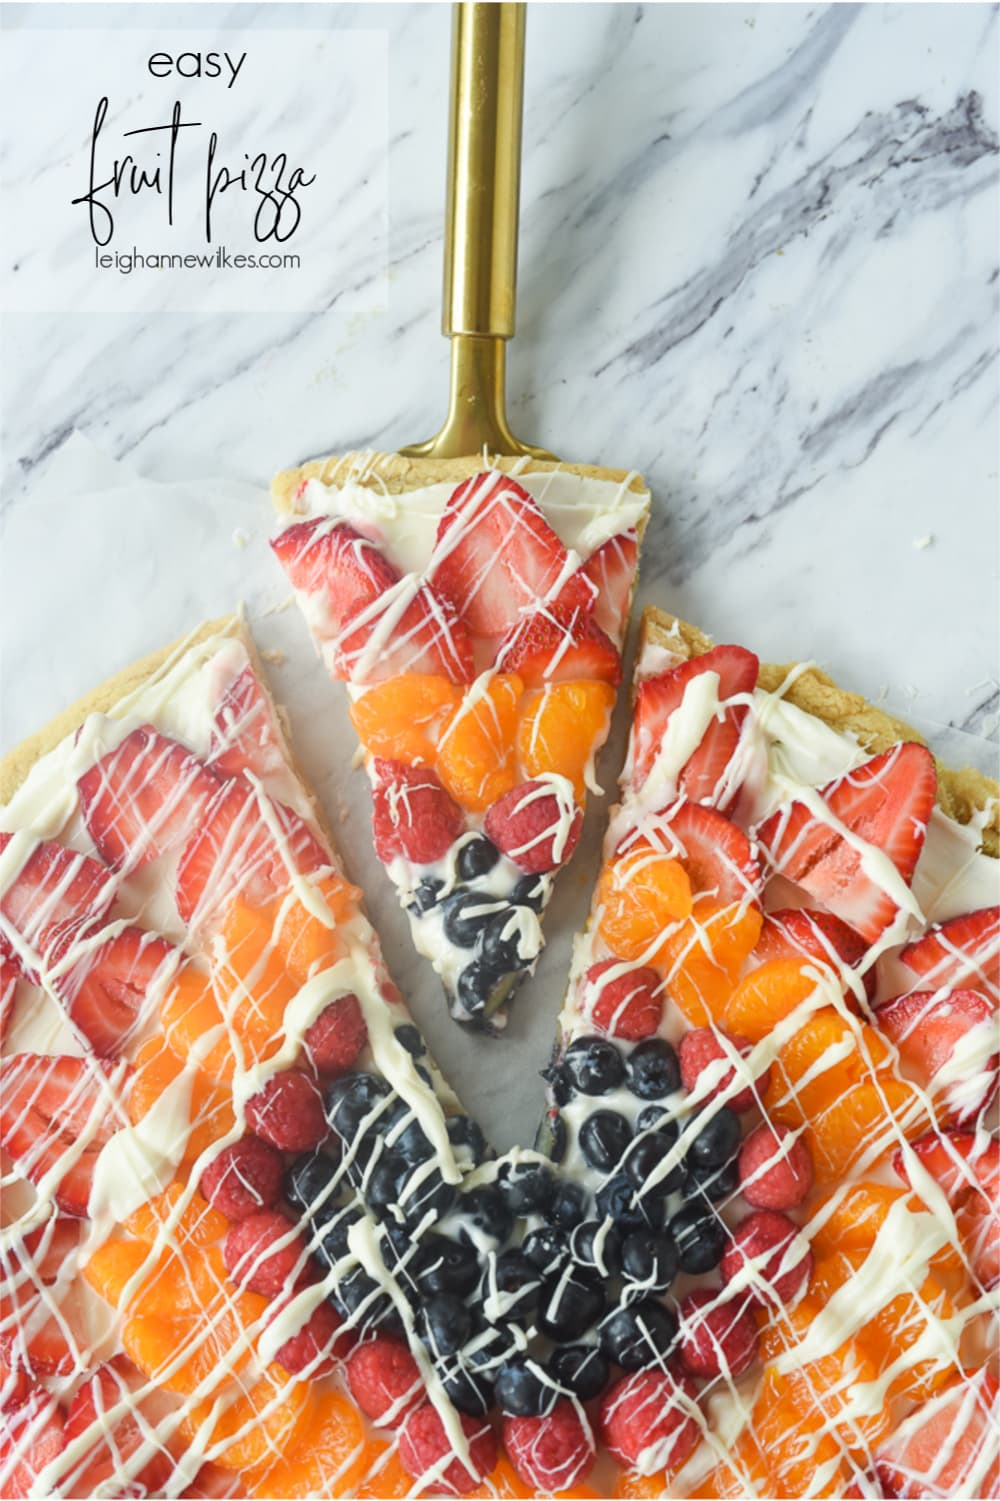 slice of fruit pizza